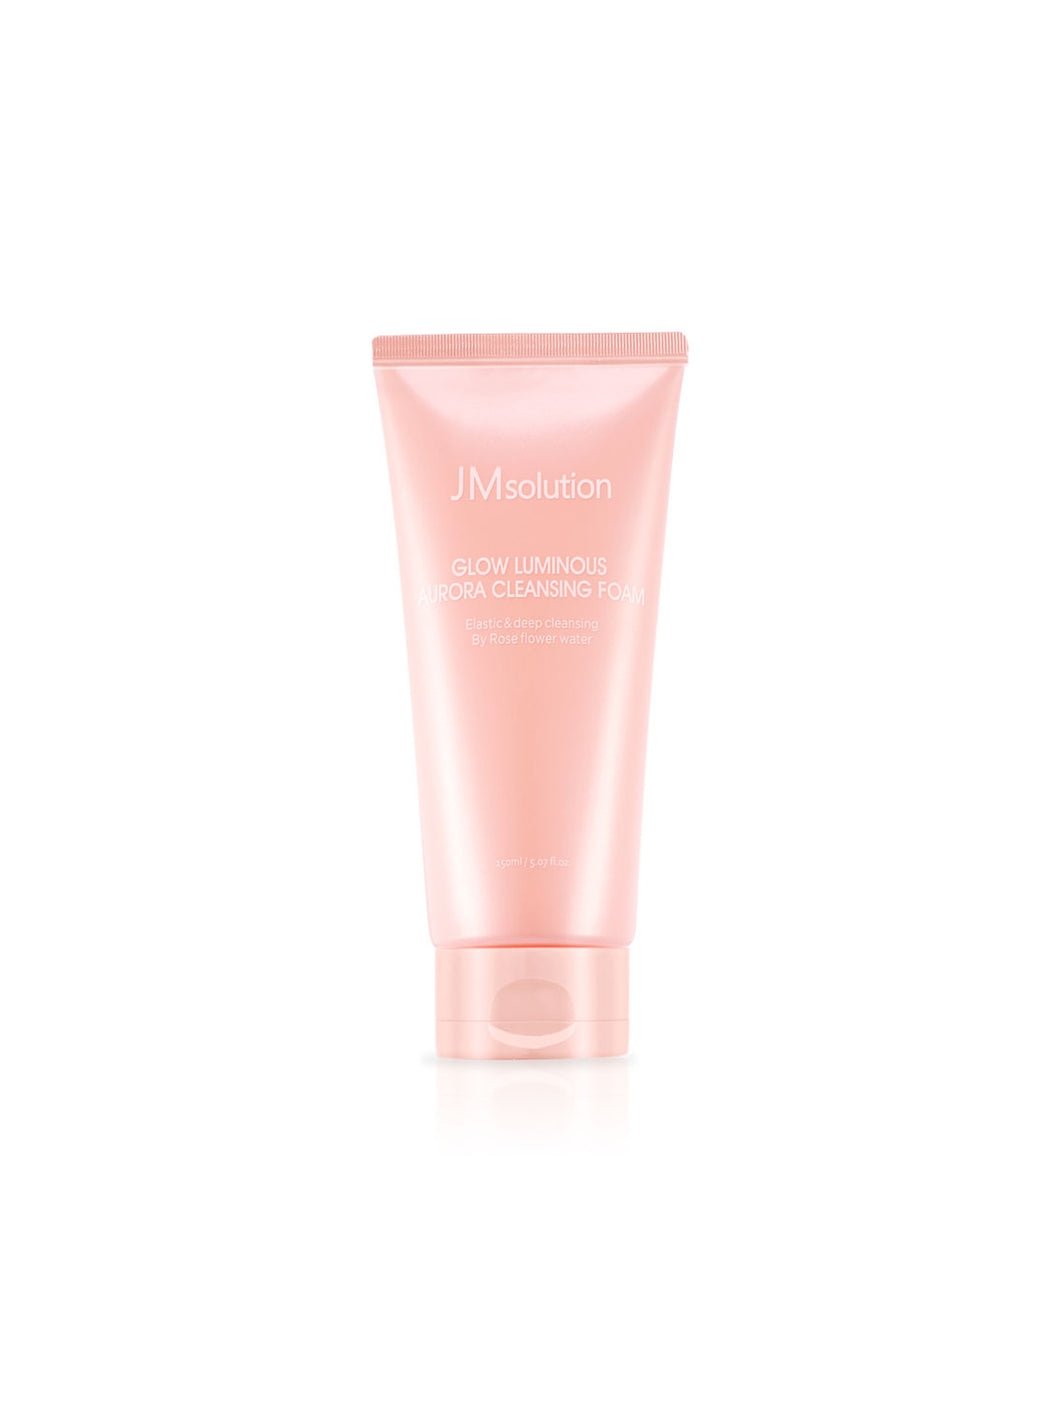 GLOW LUMINOUS AURORA CLEANSING FOAM